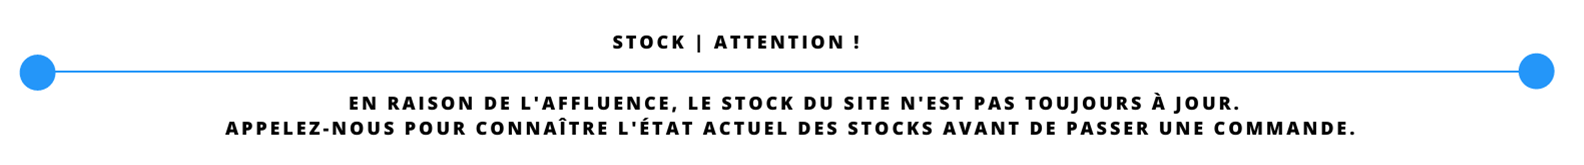 Stock - Attention